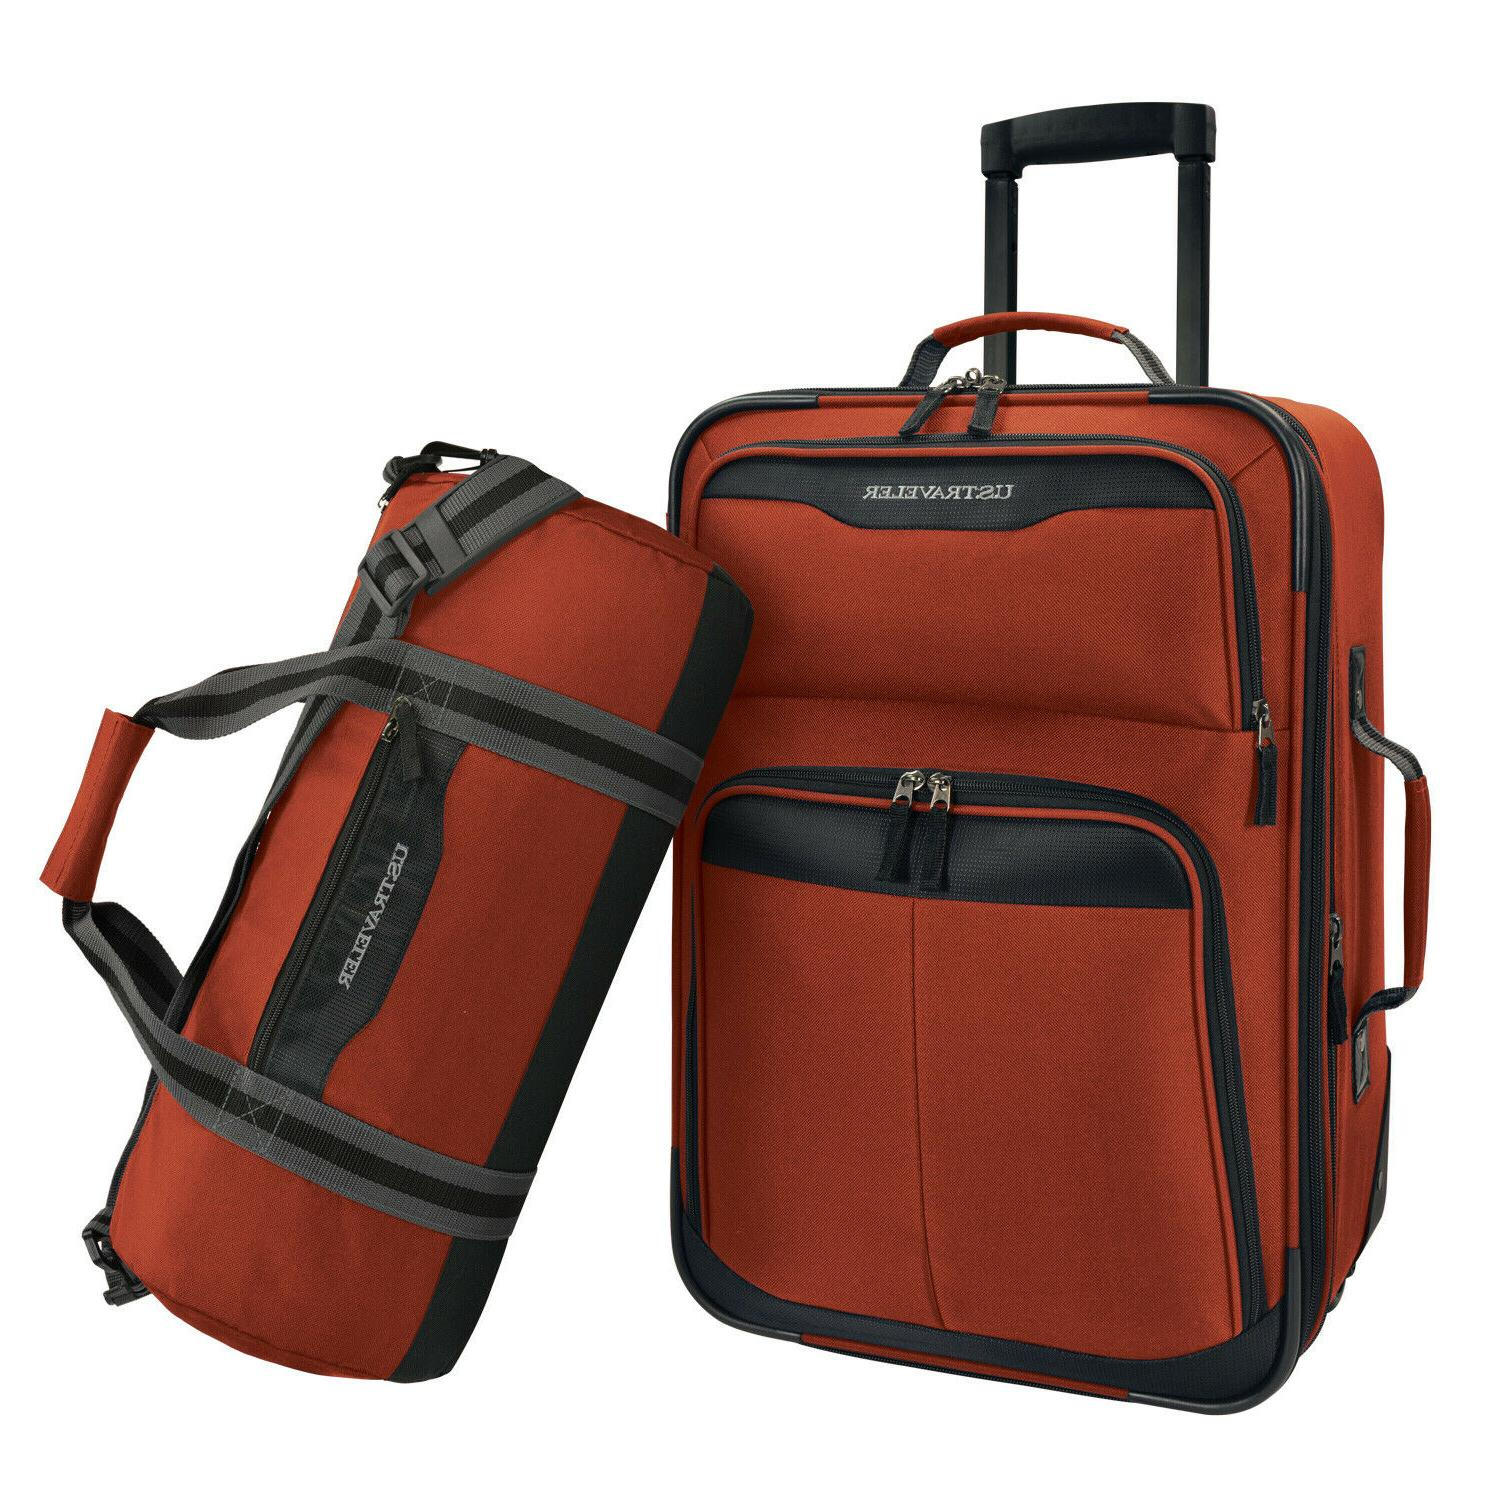 carry rolling upright duffel bag